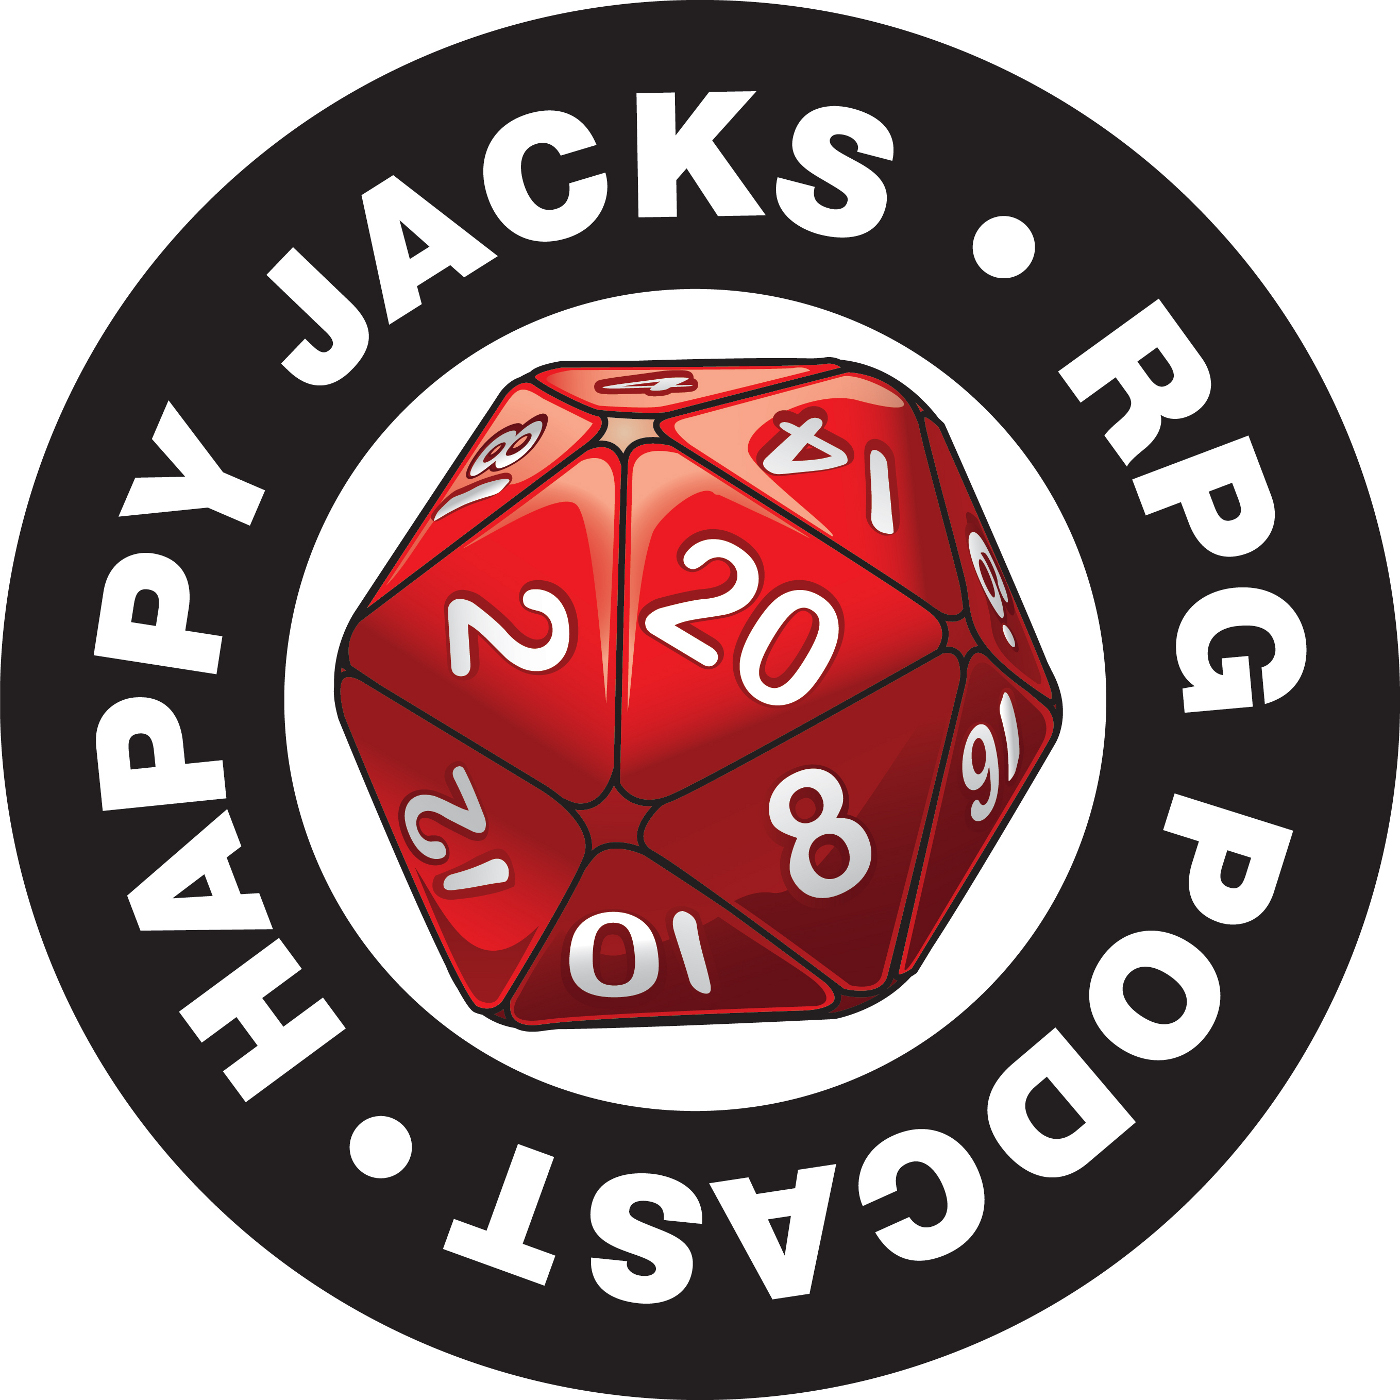 Happy Jacks RPG Podcast logo